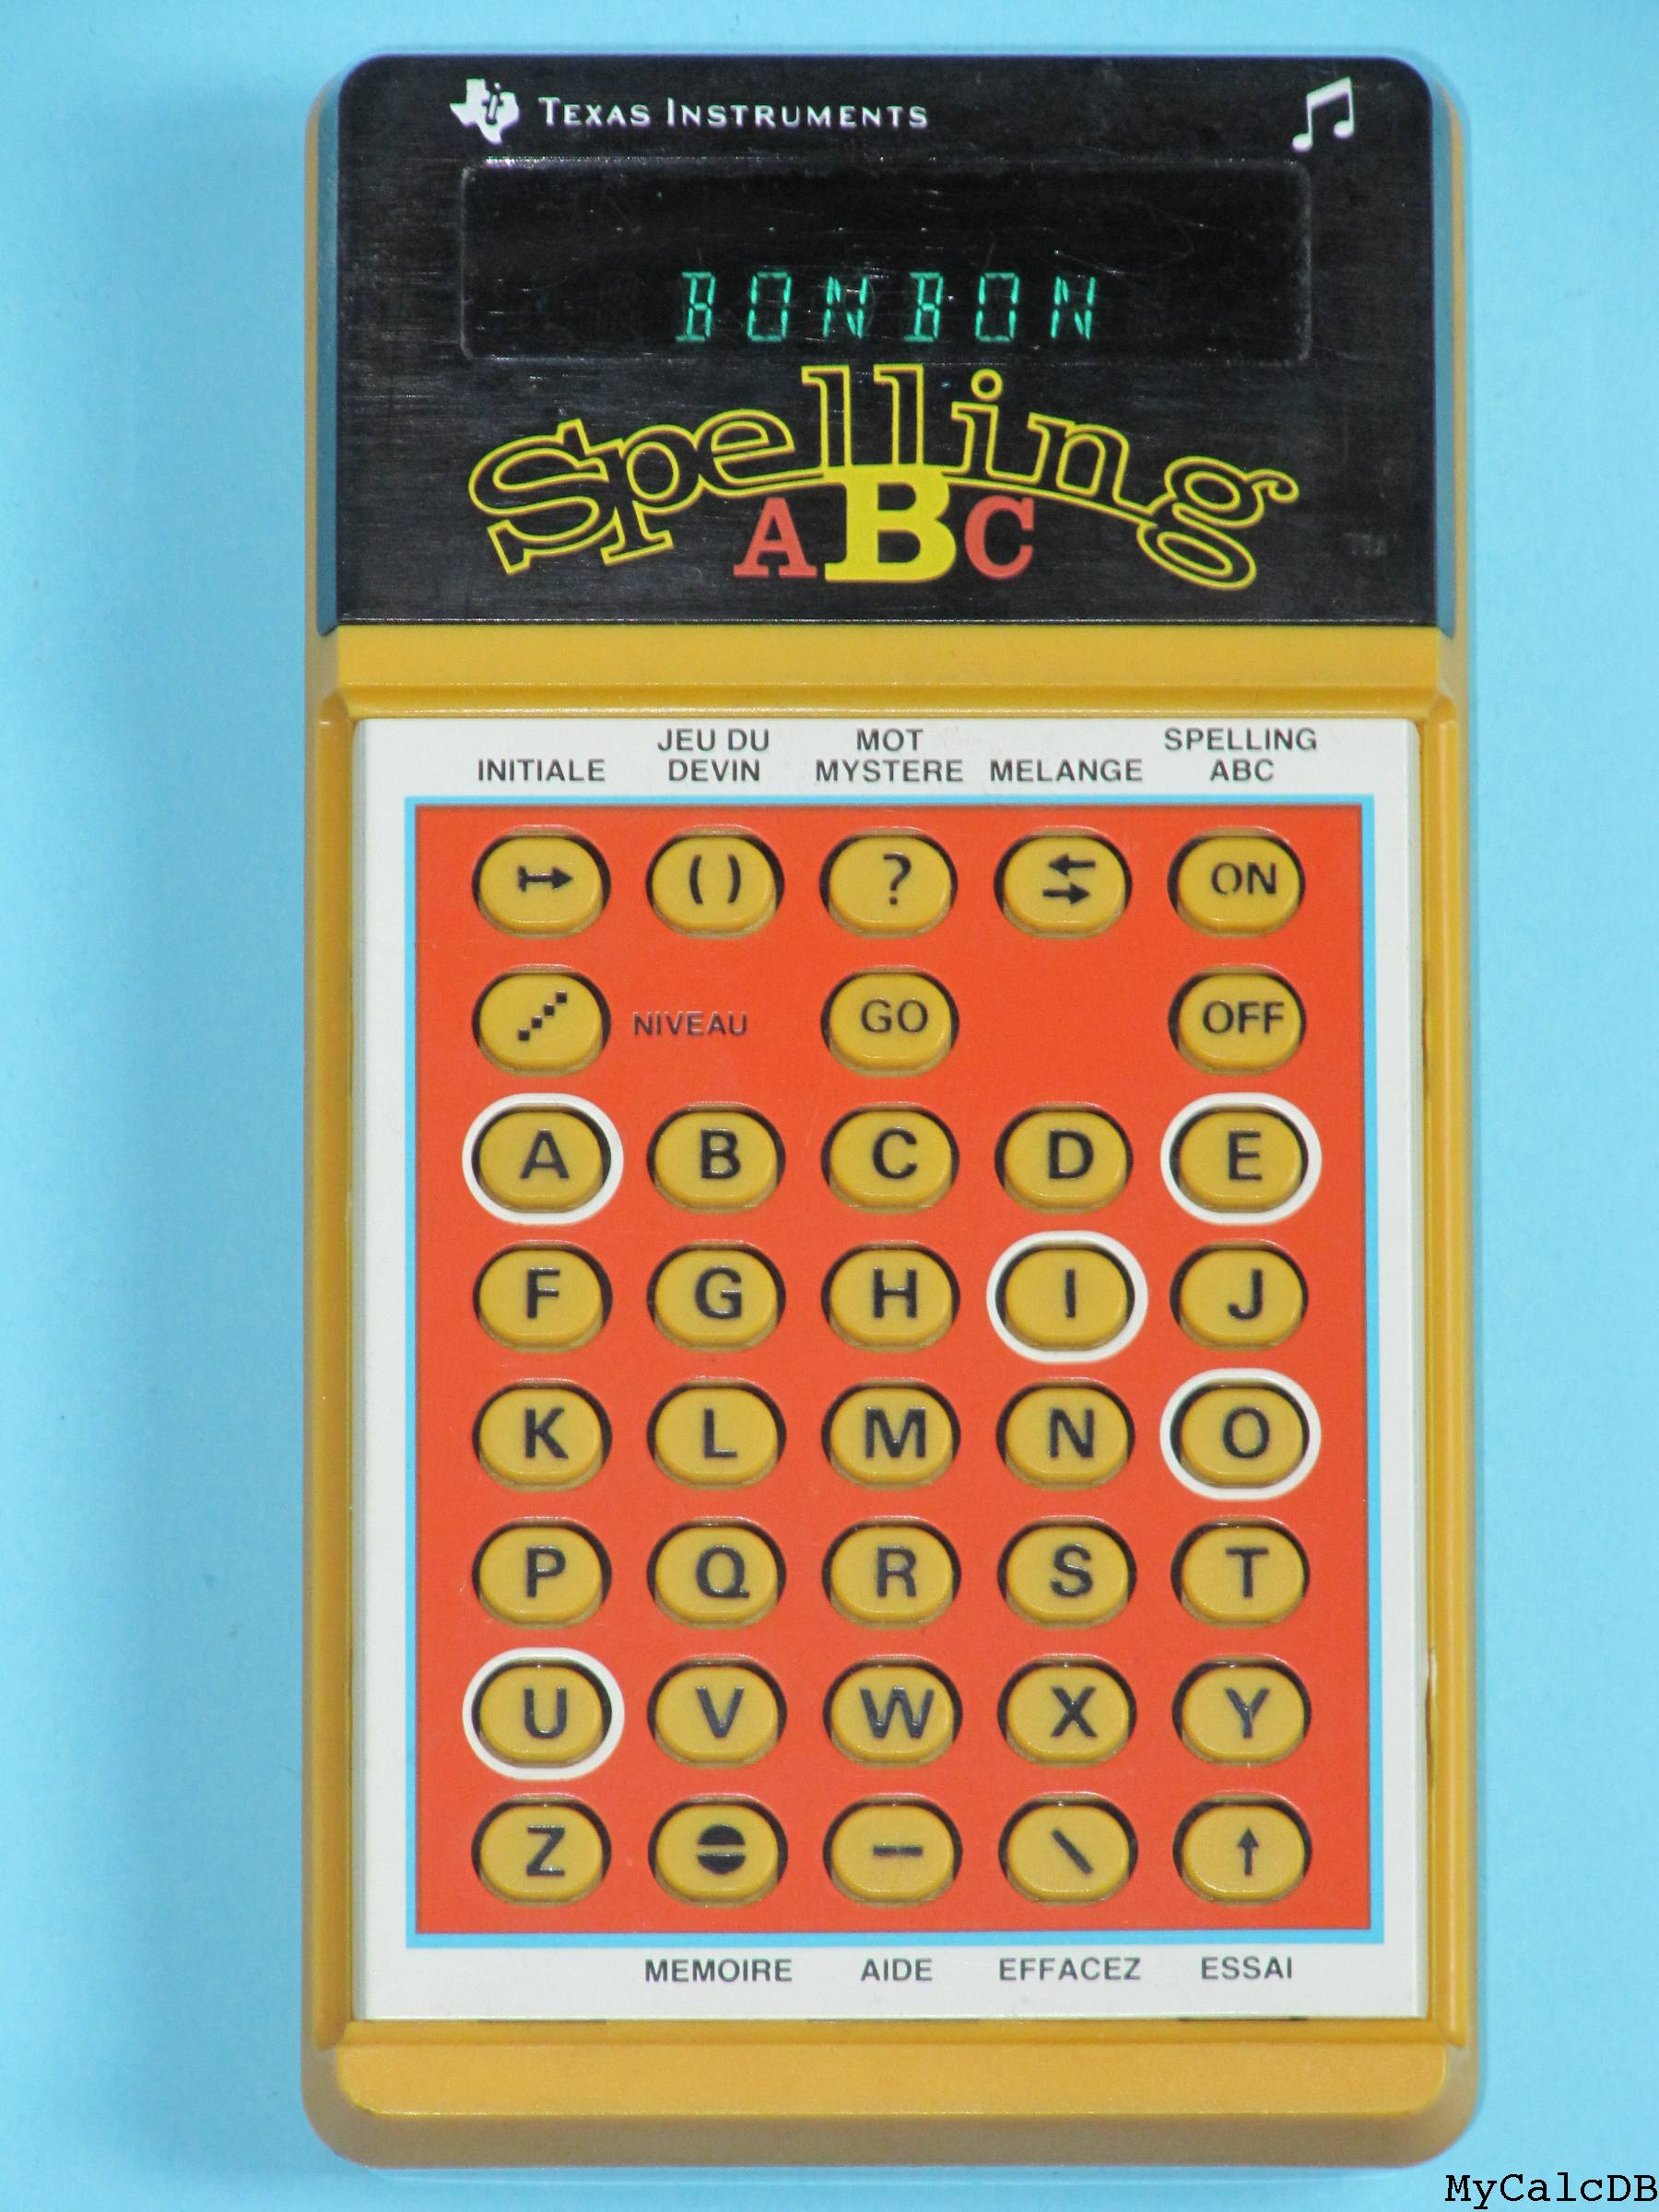 Texas Instruments Spelling ABC